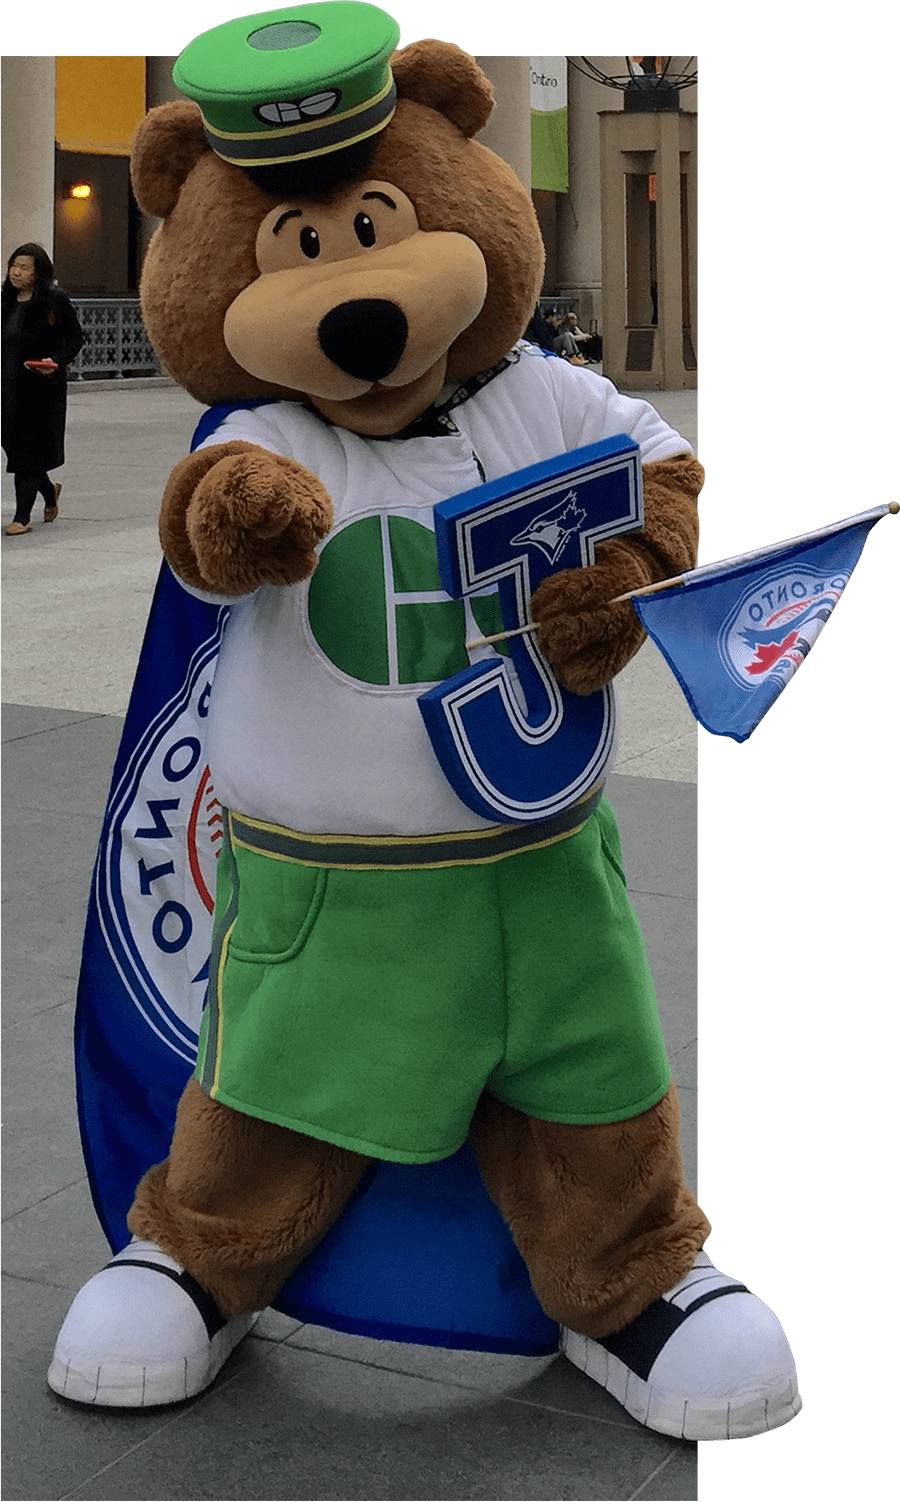 GO transit mascot outside of Union Station